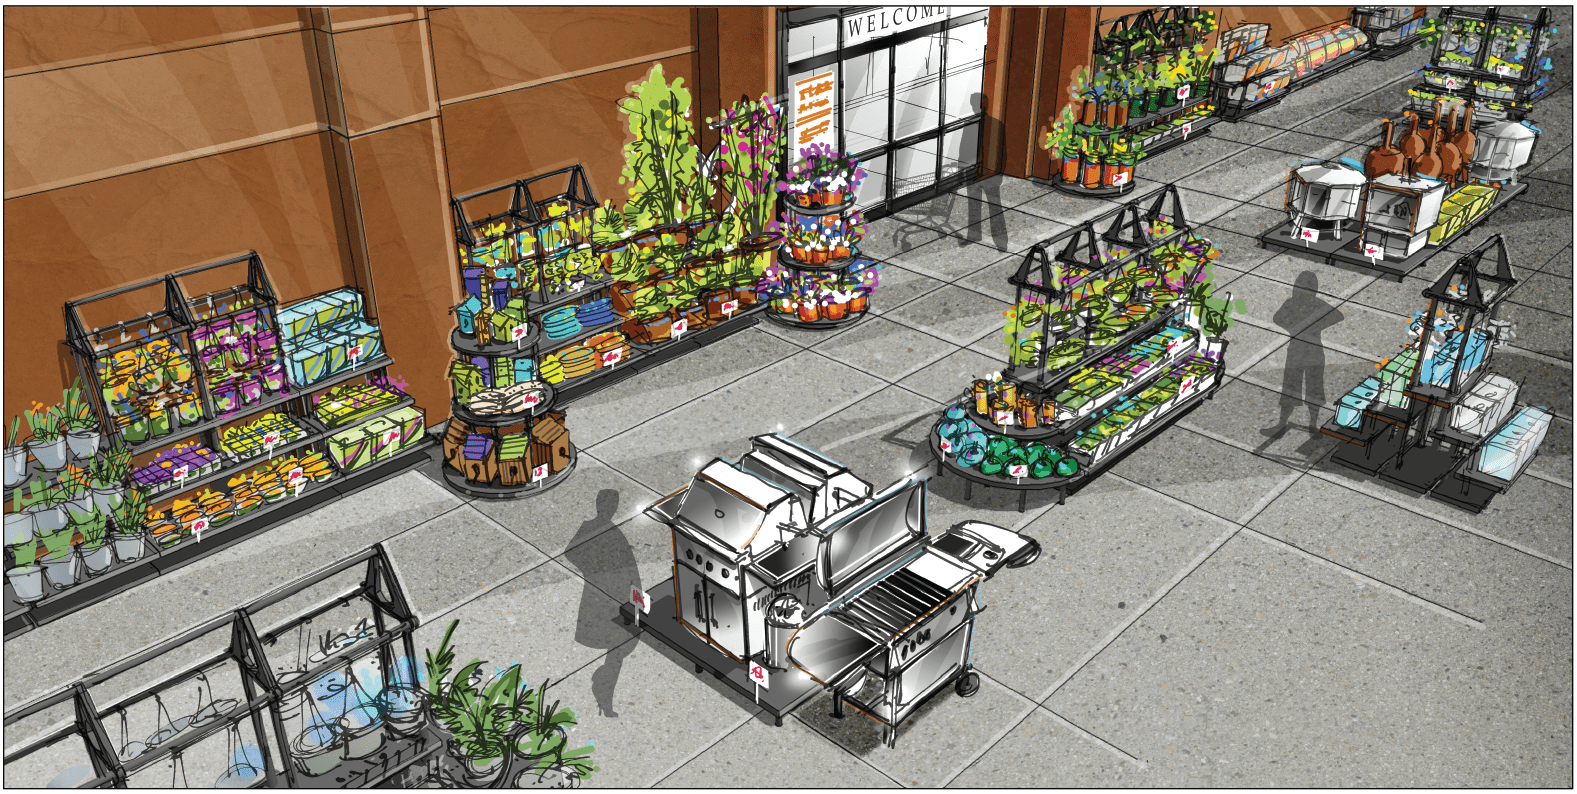 rendering of the inside of a store with plastic display stands